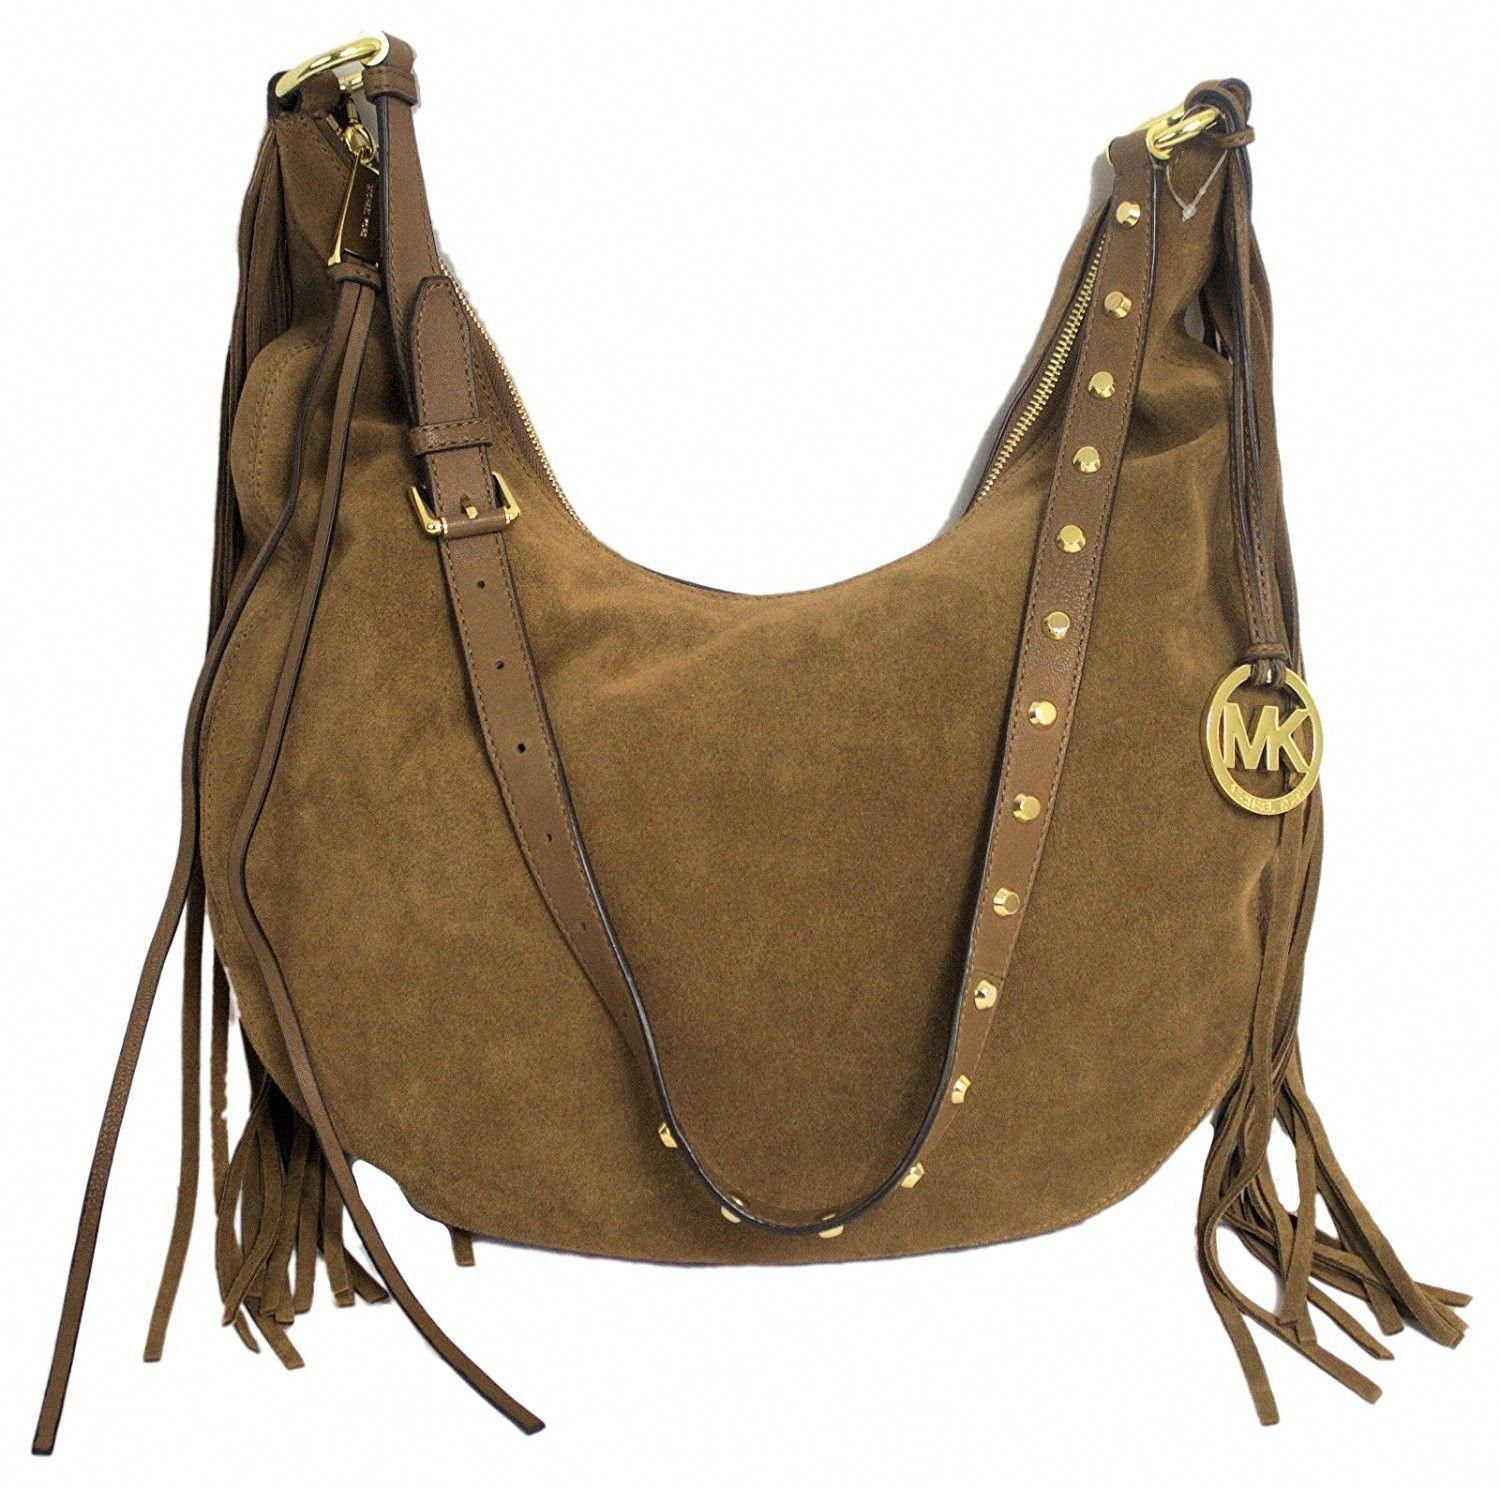 862a82d962a7 Michael Kors Rhea Large Slouchy Suede Leather Shoulder Bag - Coffee brown  suede finished leather with